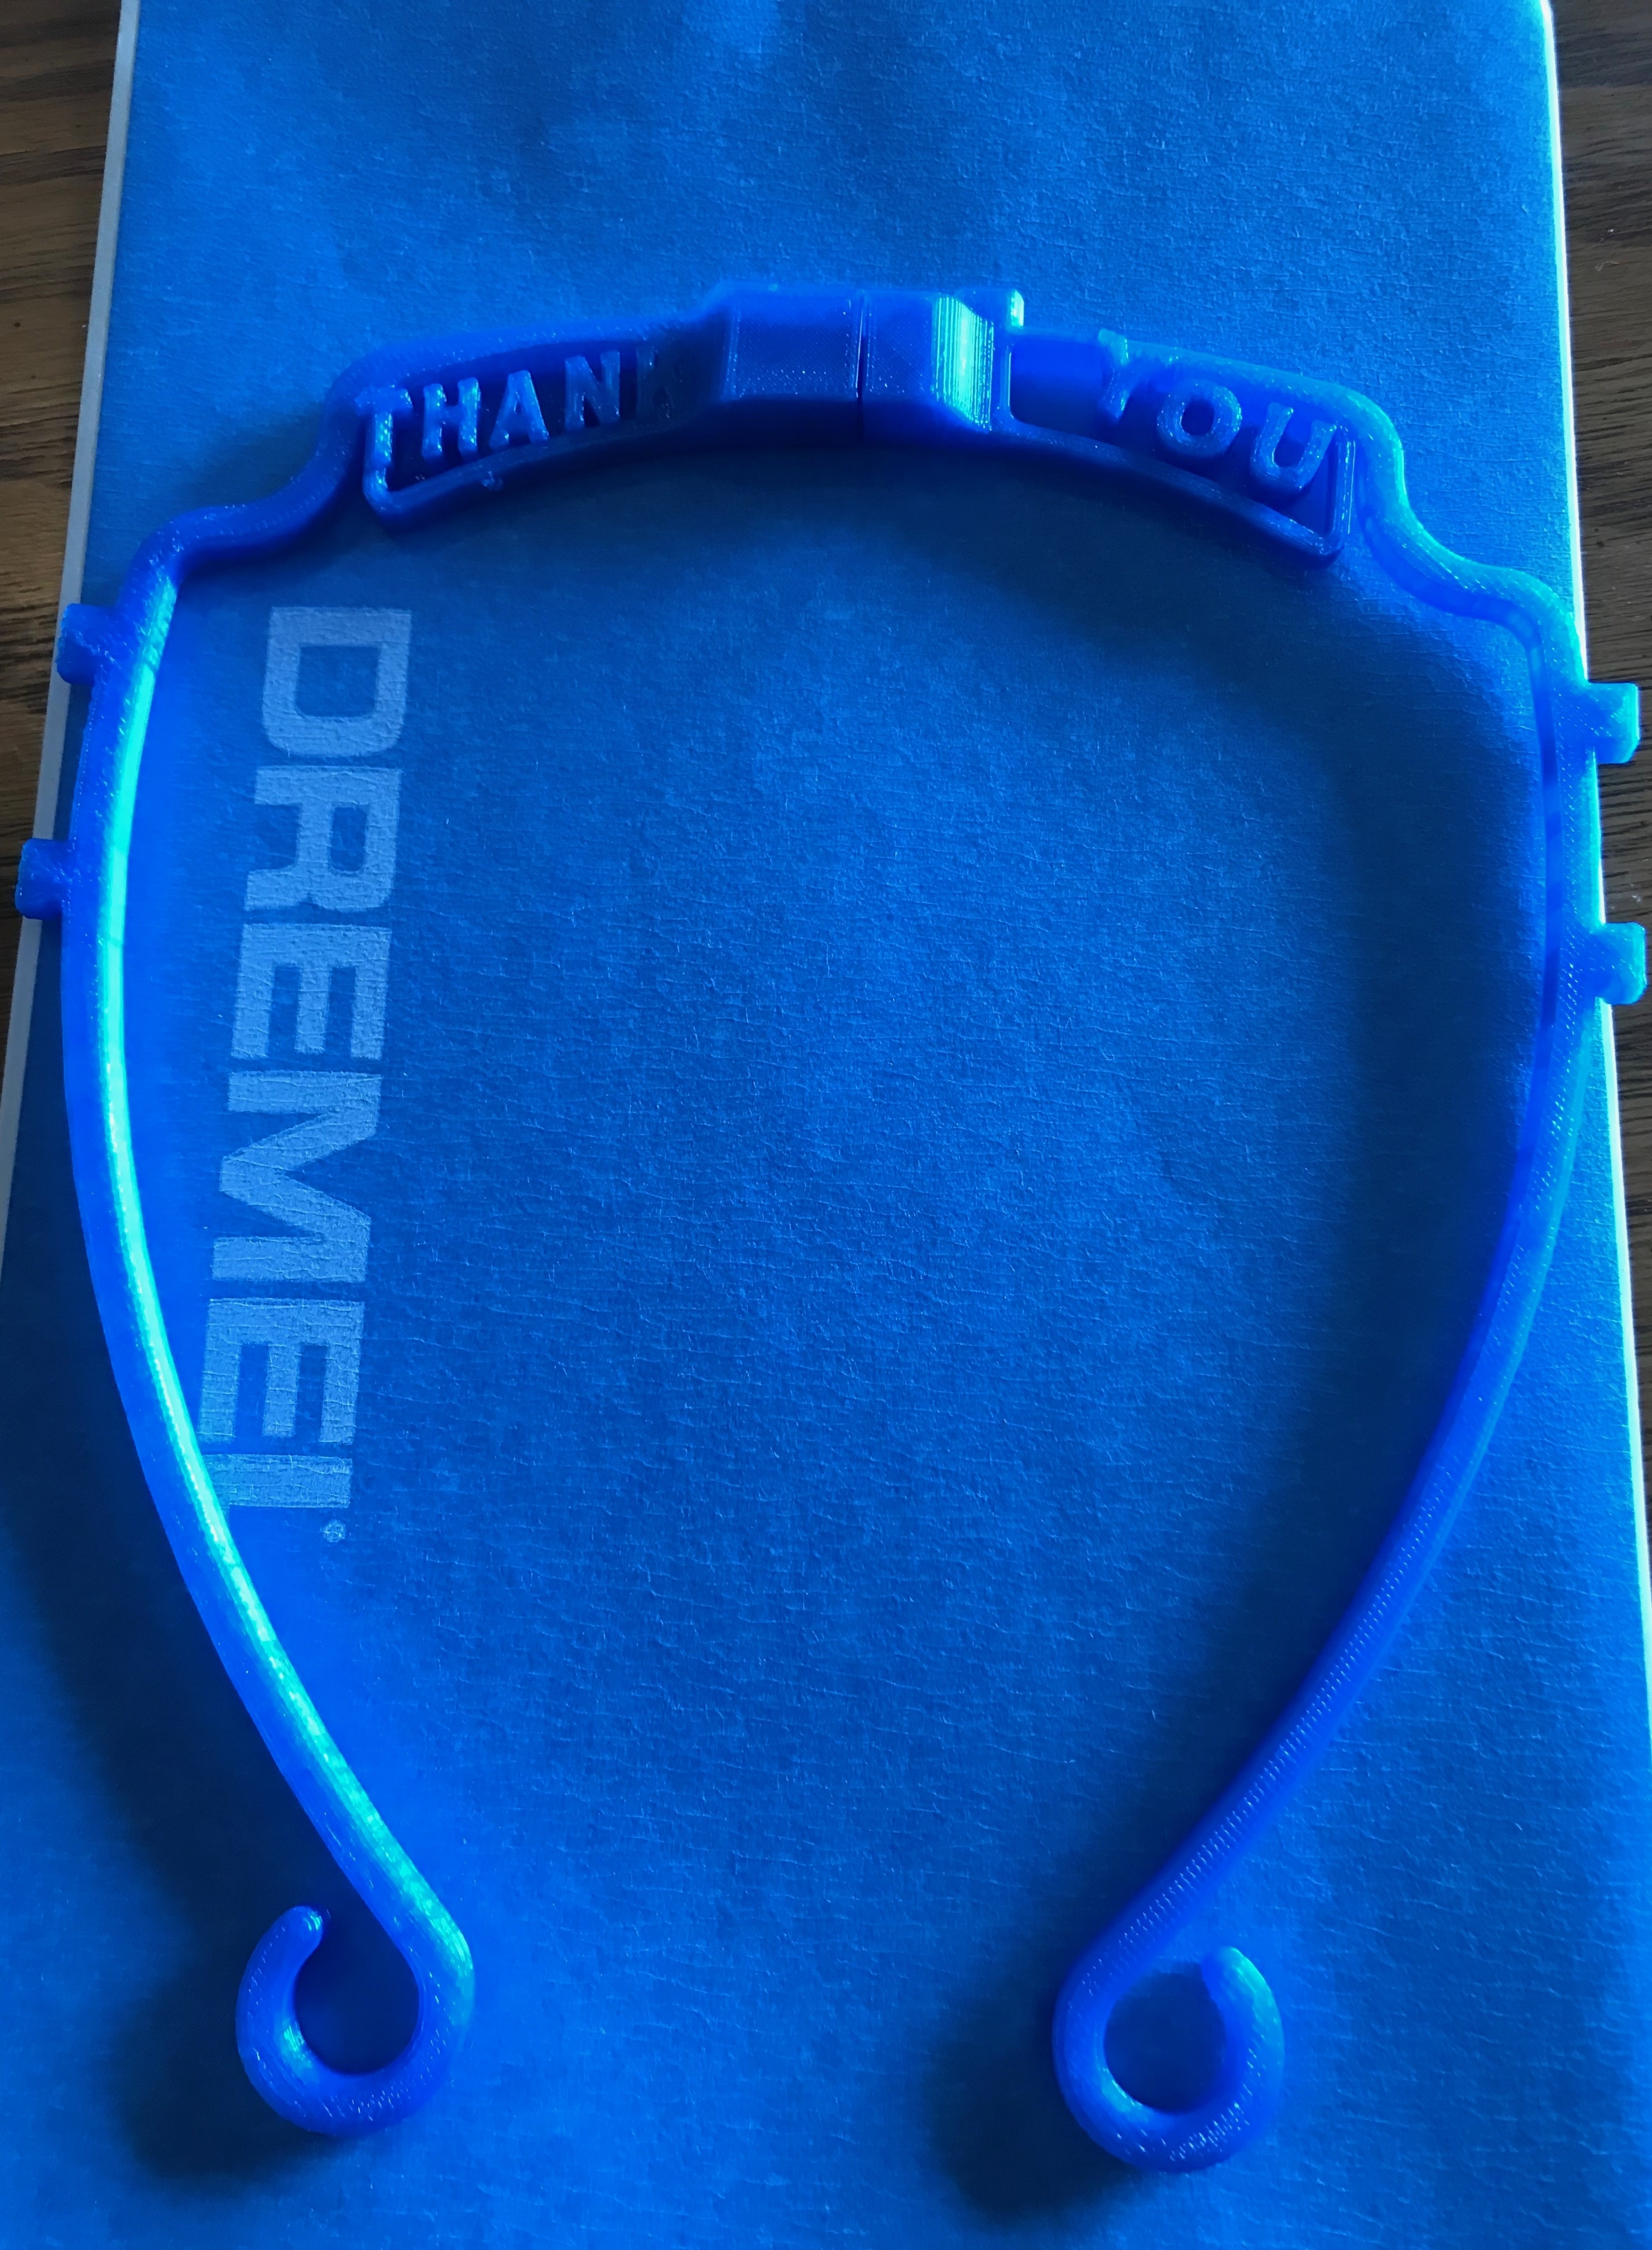 A 3D printed face mask frame with a personalized message